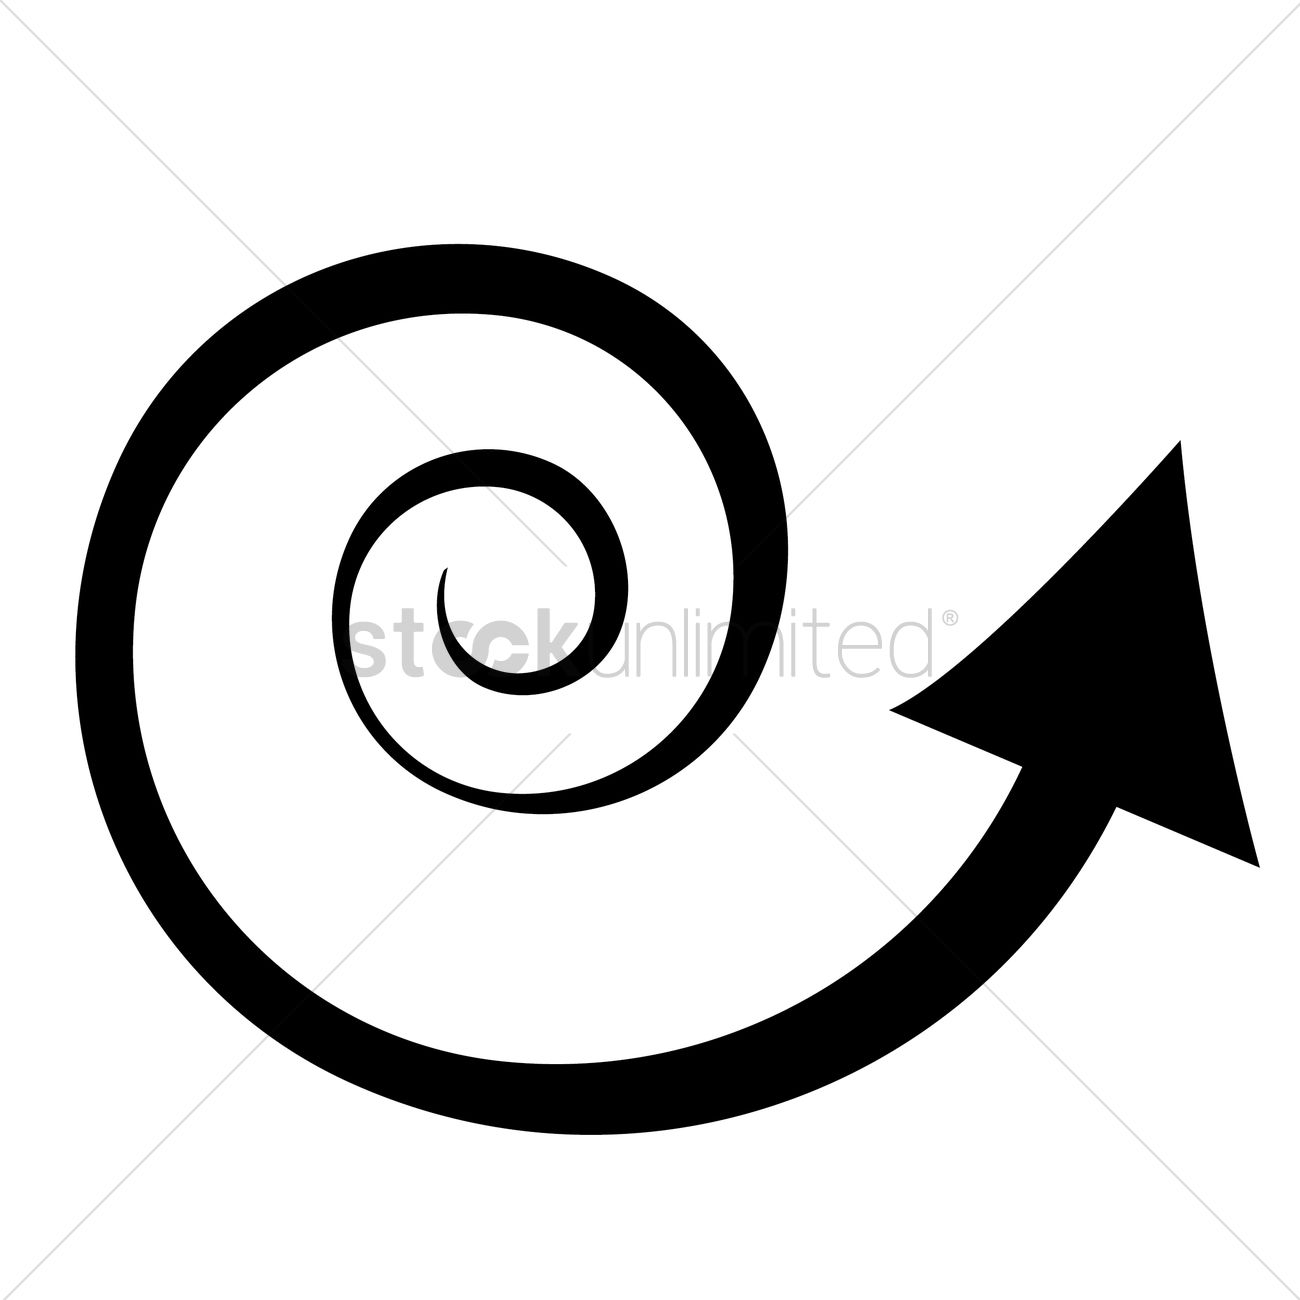 Spiral arrow clipart svg library Spiral arrow Vector Image - 1378722 | StockUnlimited svg library